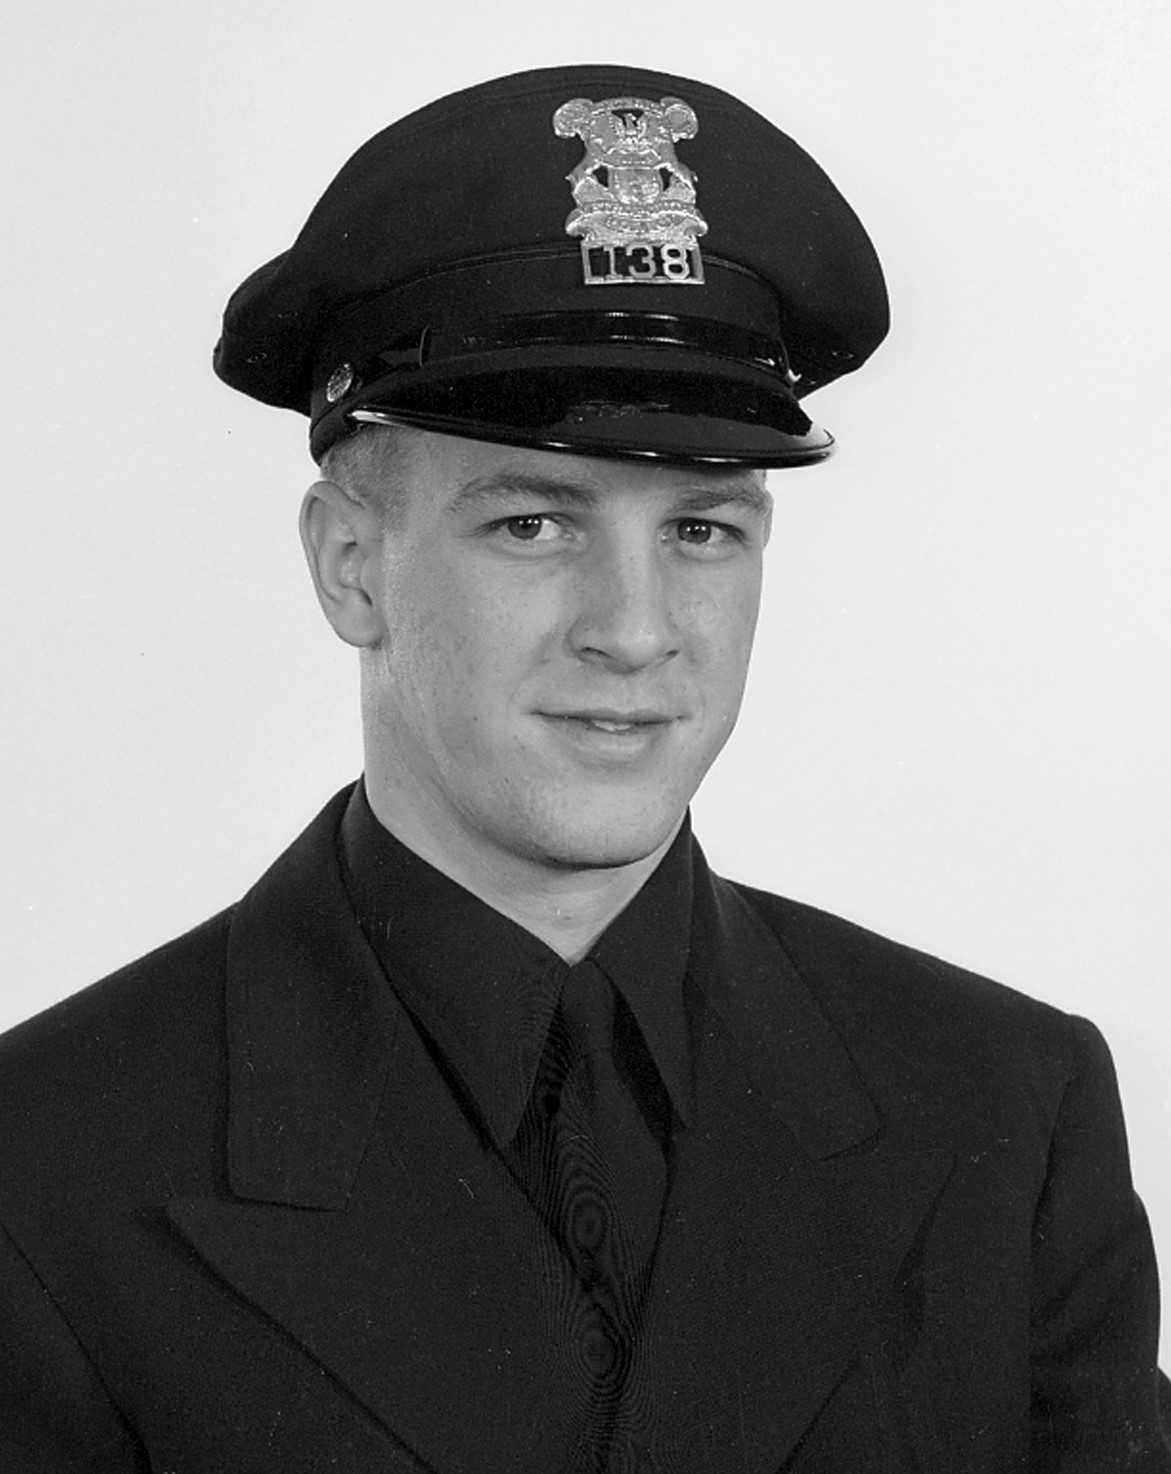 Police Officer John Calandro, Jr. | Detroit Police Department, Michigan